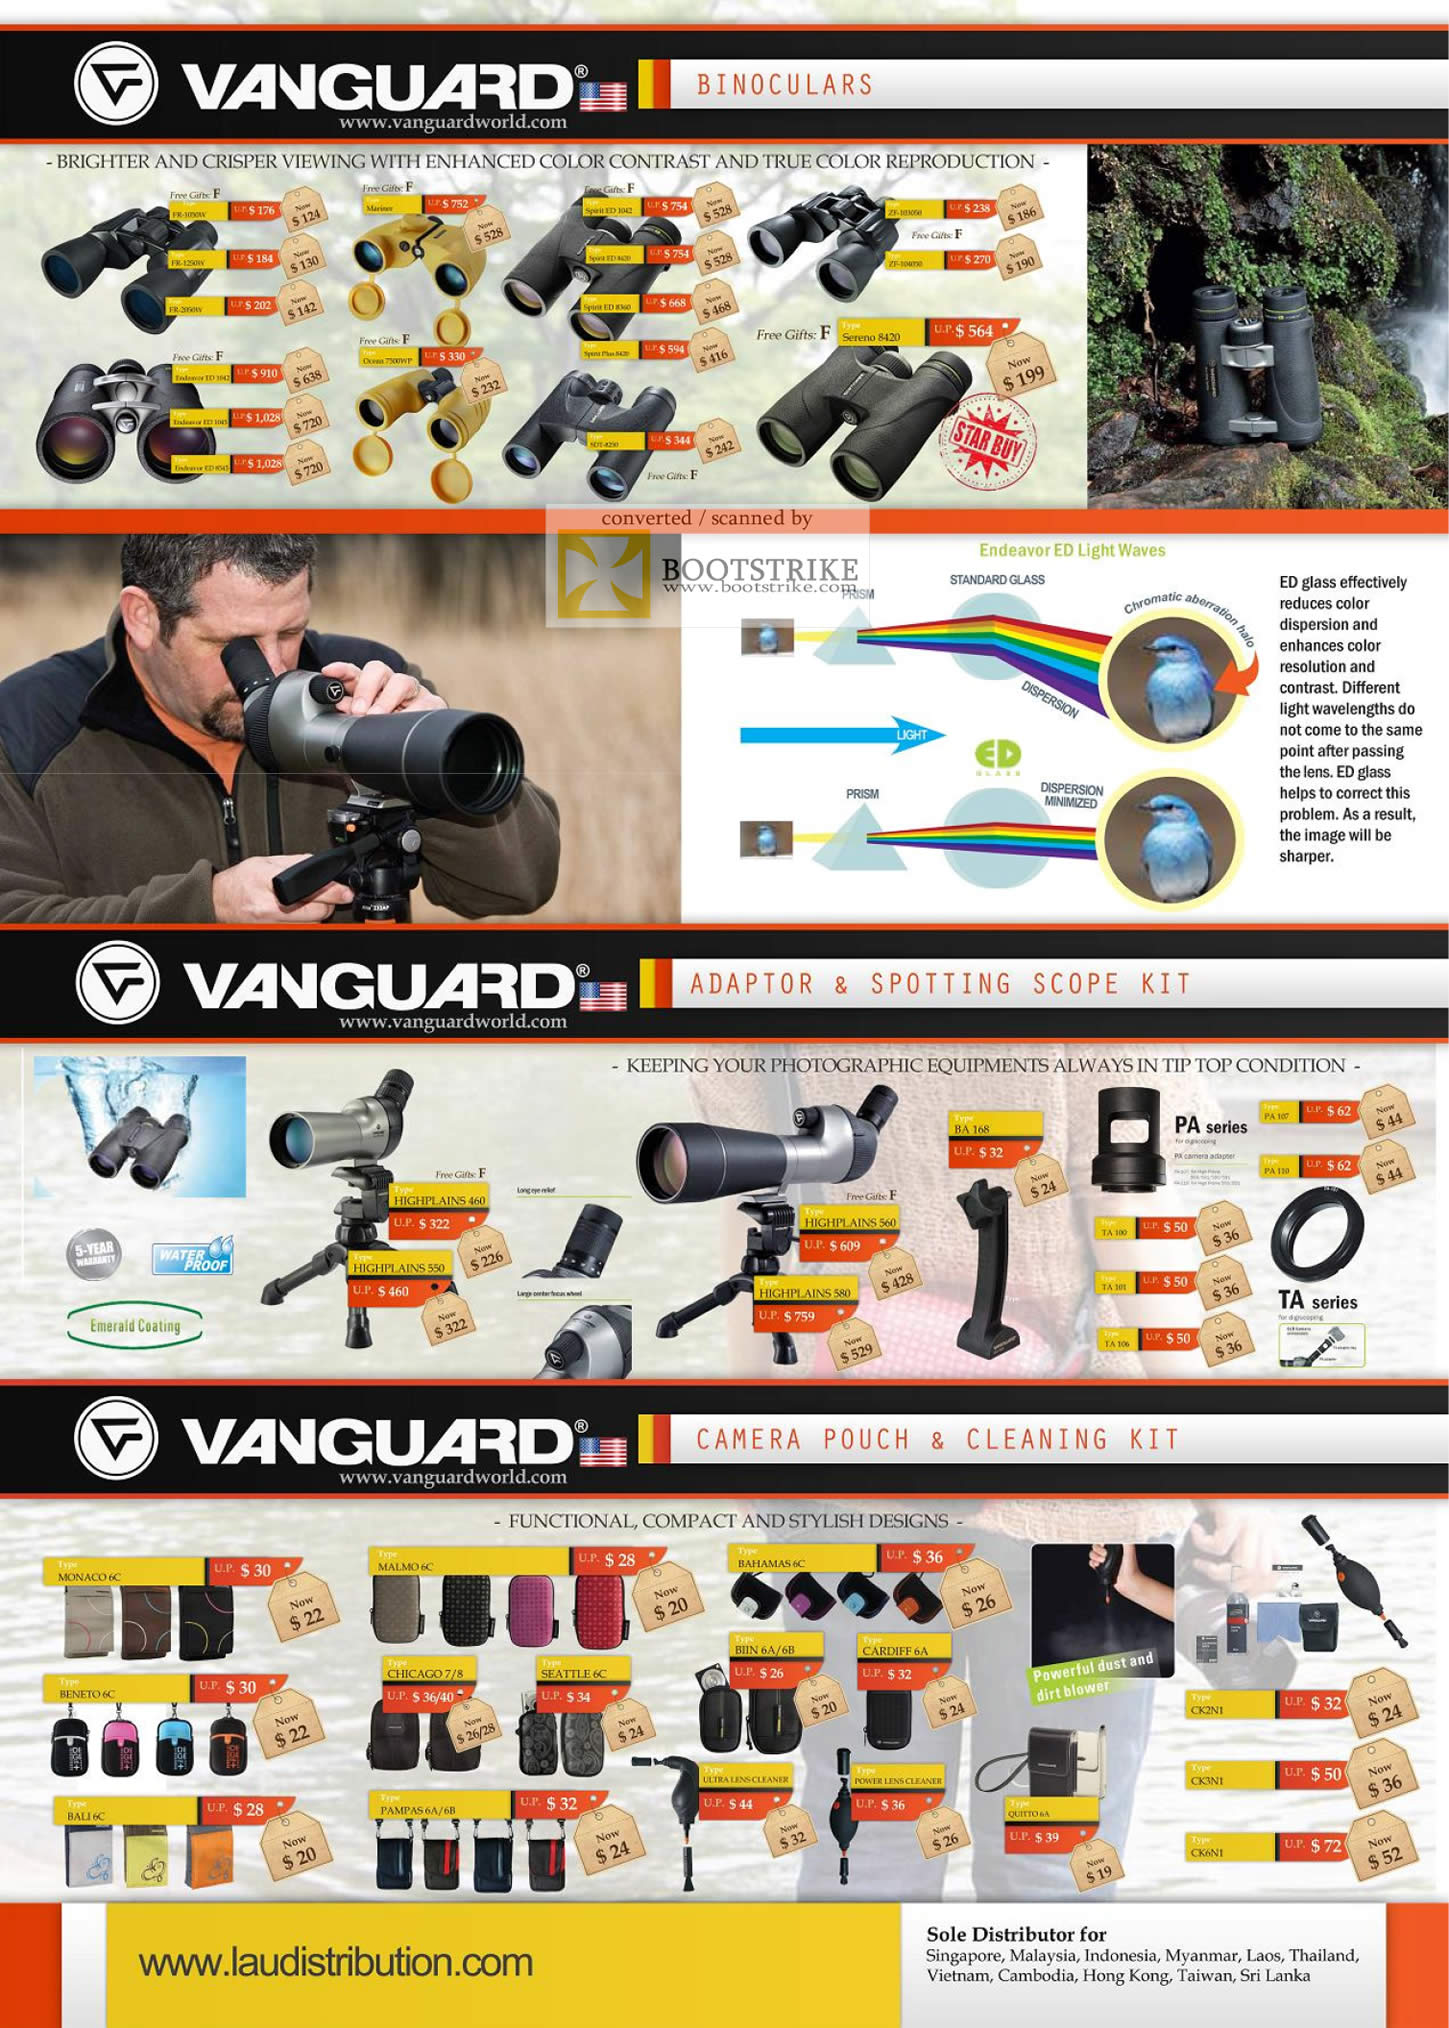 COMEX 2011 price list image brochure of Lau Intl Vanguard Binoculars Endeavor ED Glass Adaptor Spotting Scope Kit Camera Pouch Cleaning Kit